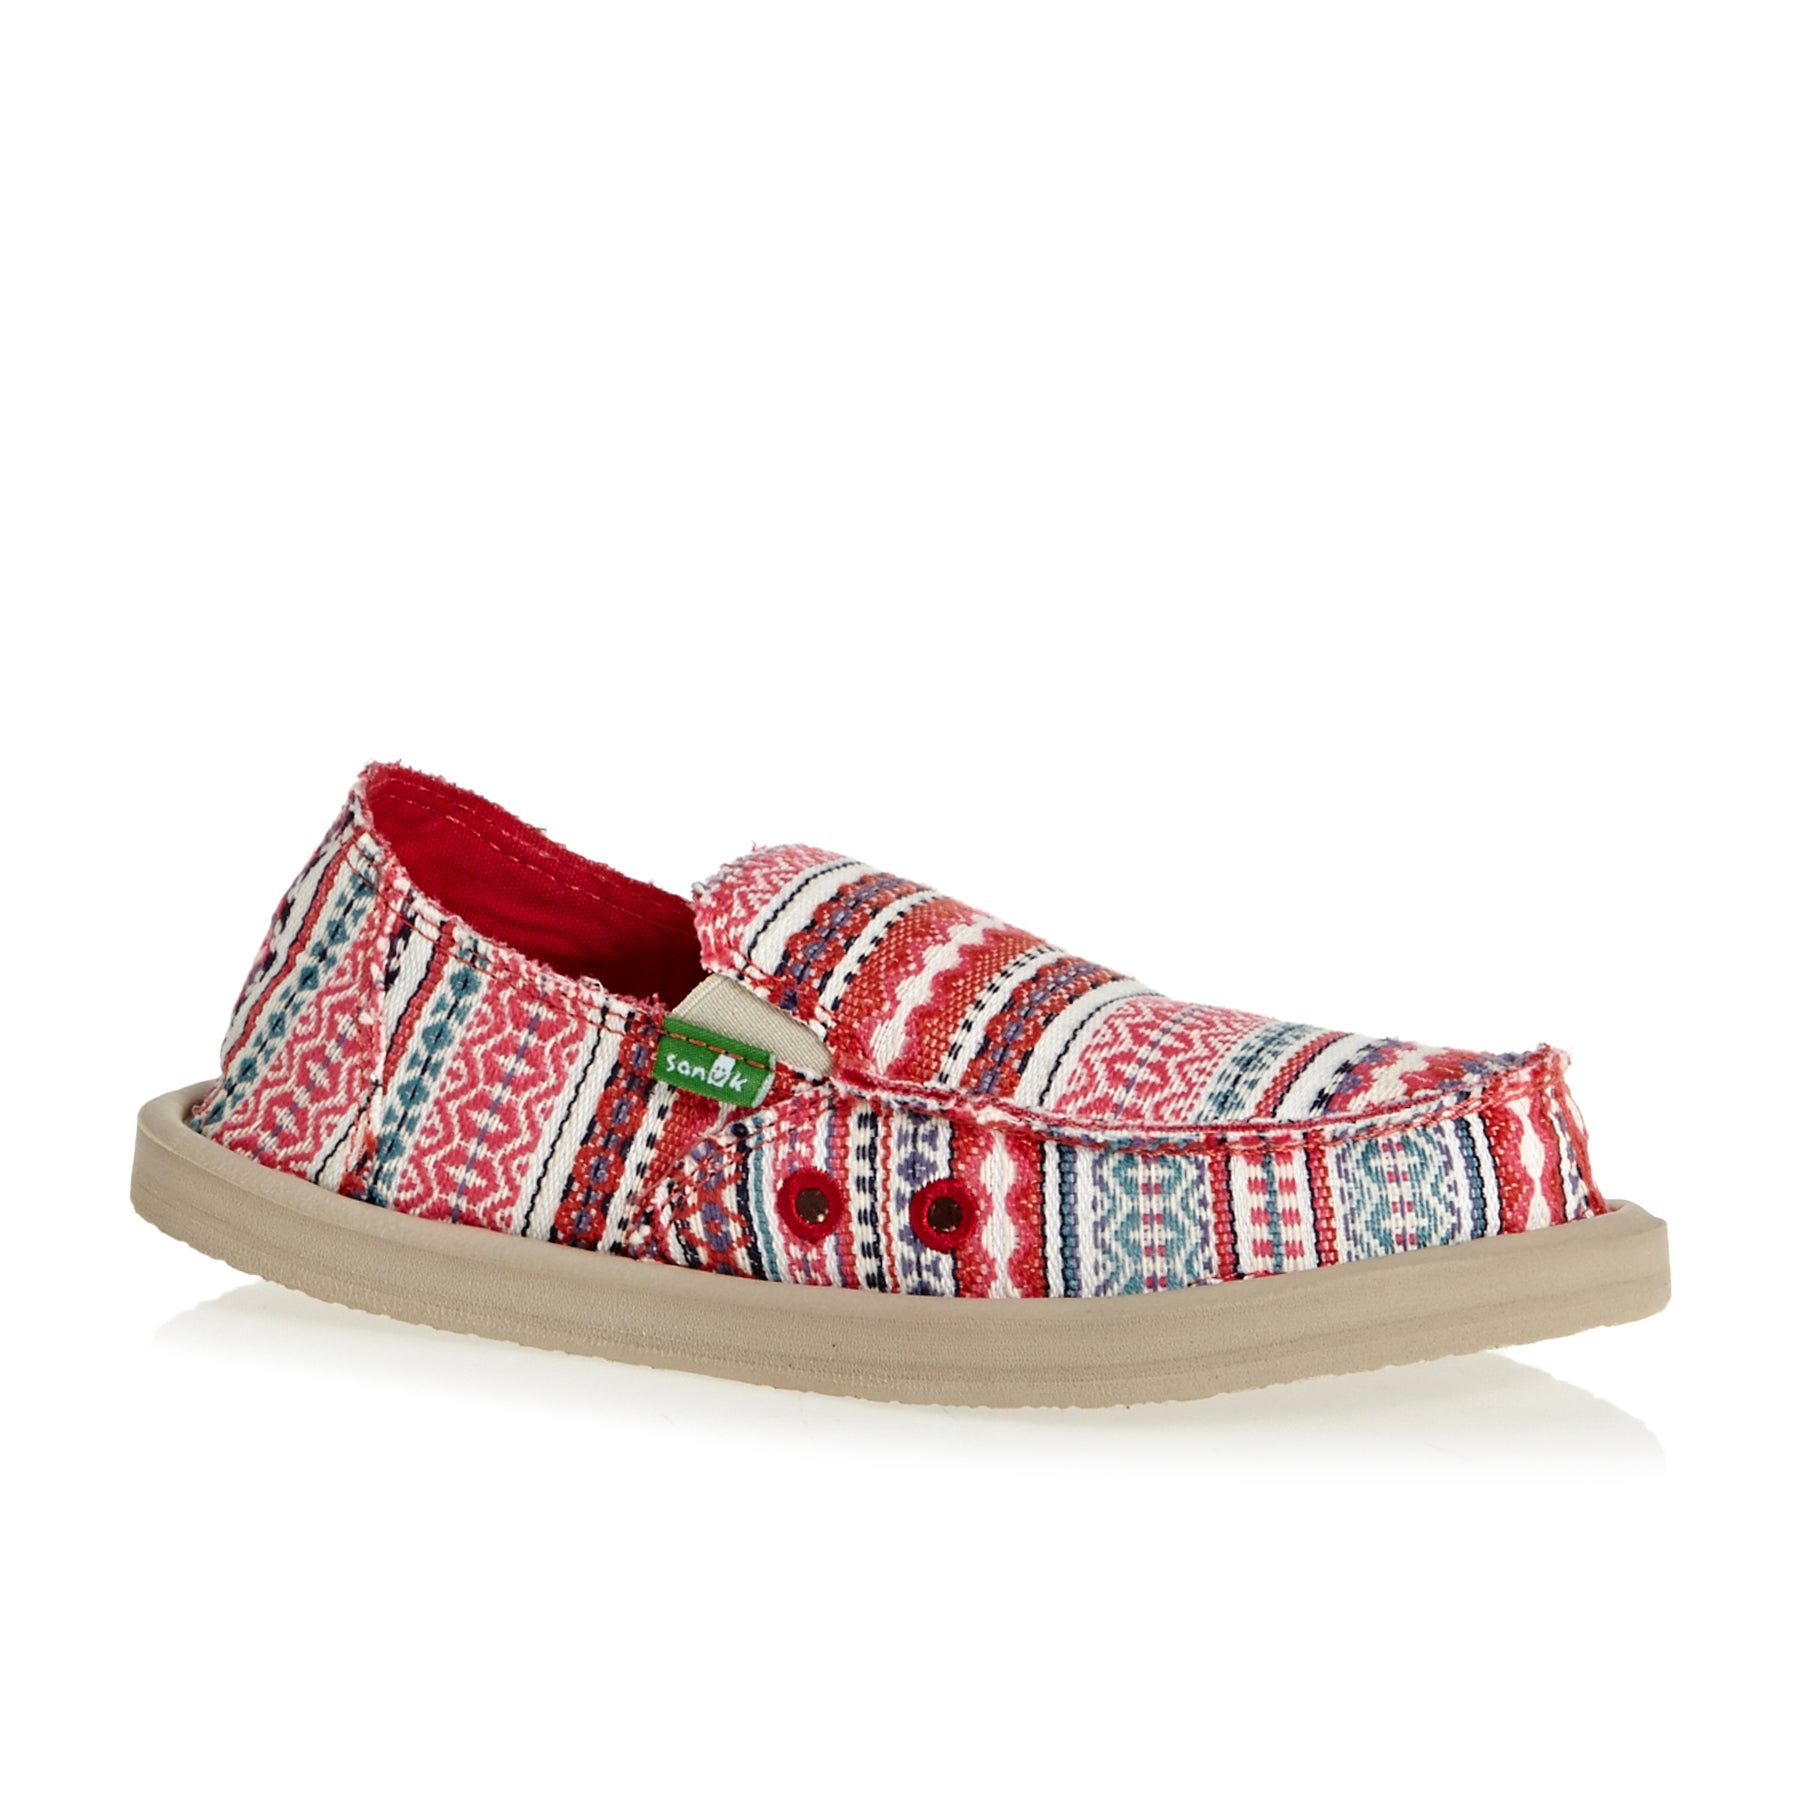 Sanuk Y Lil Donna Blanket Kids Slip On Shoes - Rapsberry Lanai Blanket